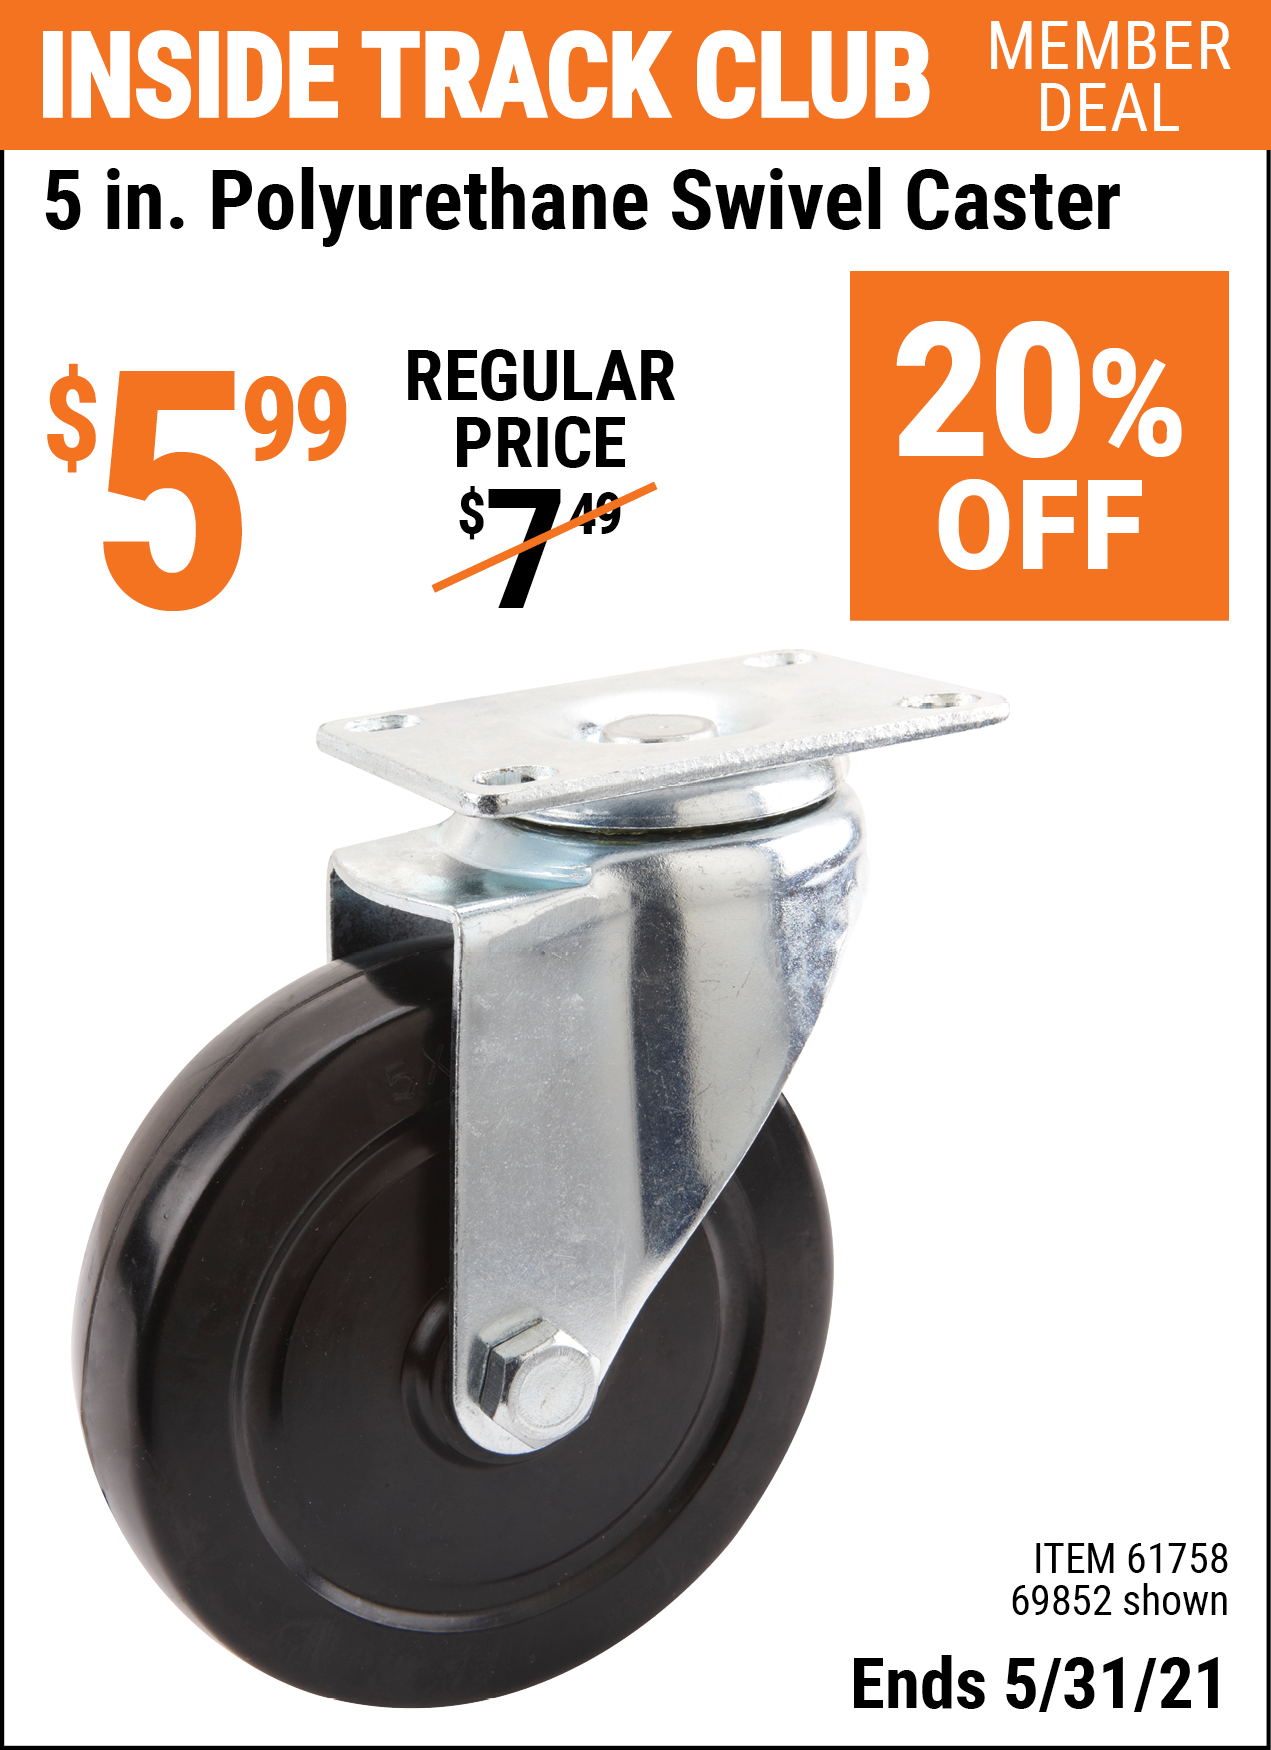 Inside Track Club members can buy the 5 in. Polyurethane Heavy Duty Swivel Caster (Item 69852/61758) for $5.99, valid through 5/31/2021.